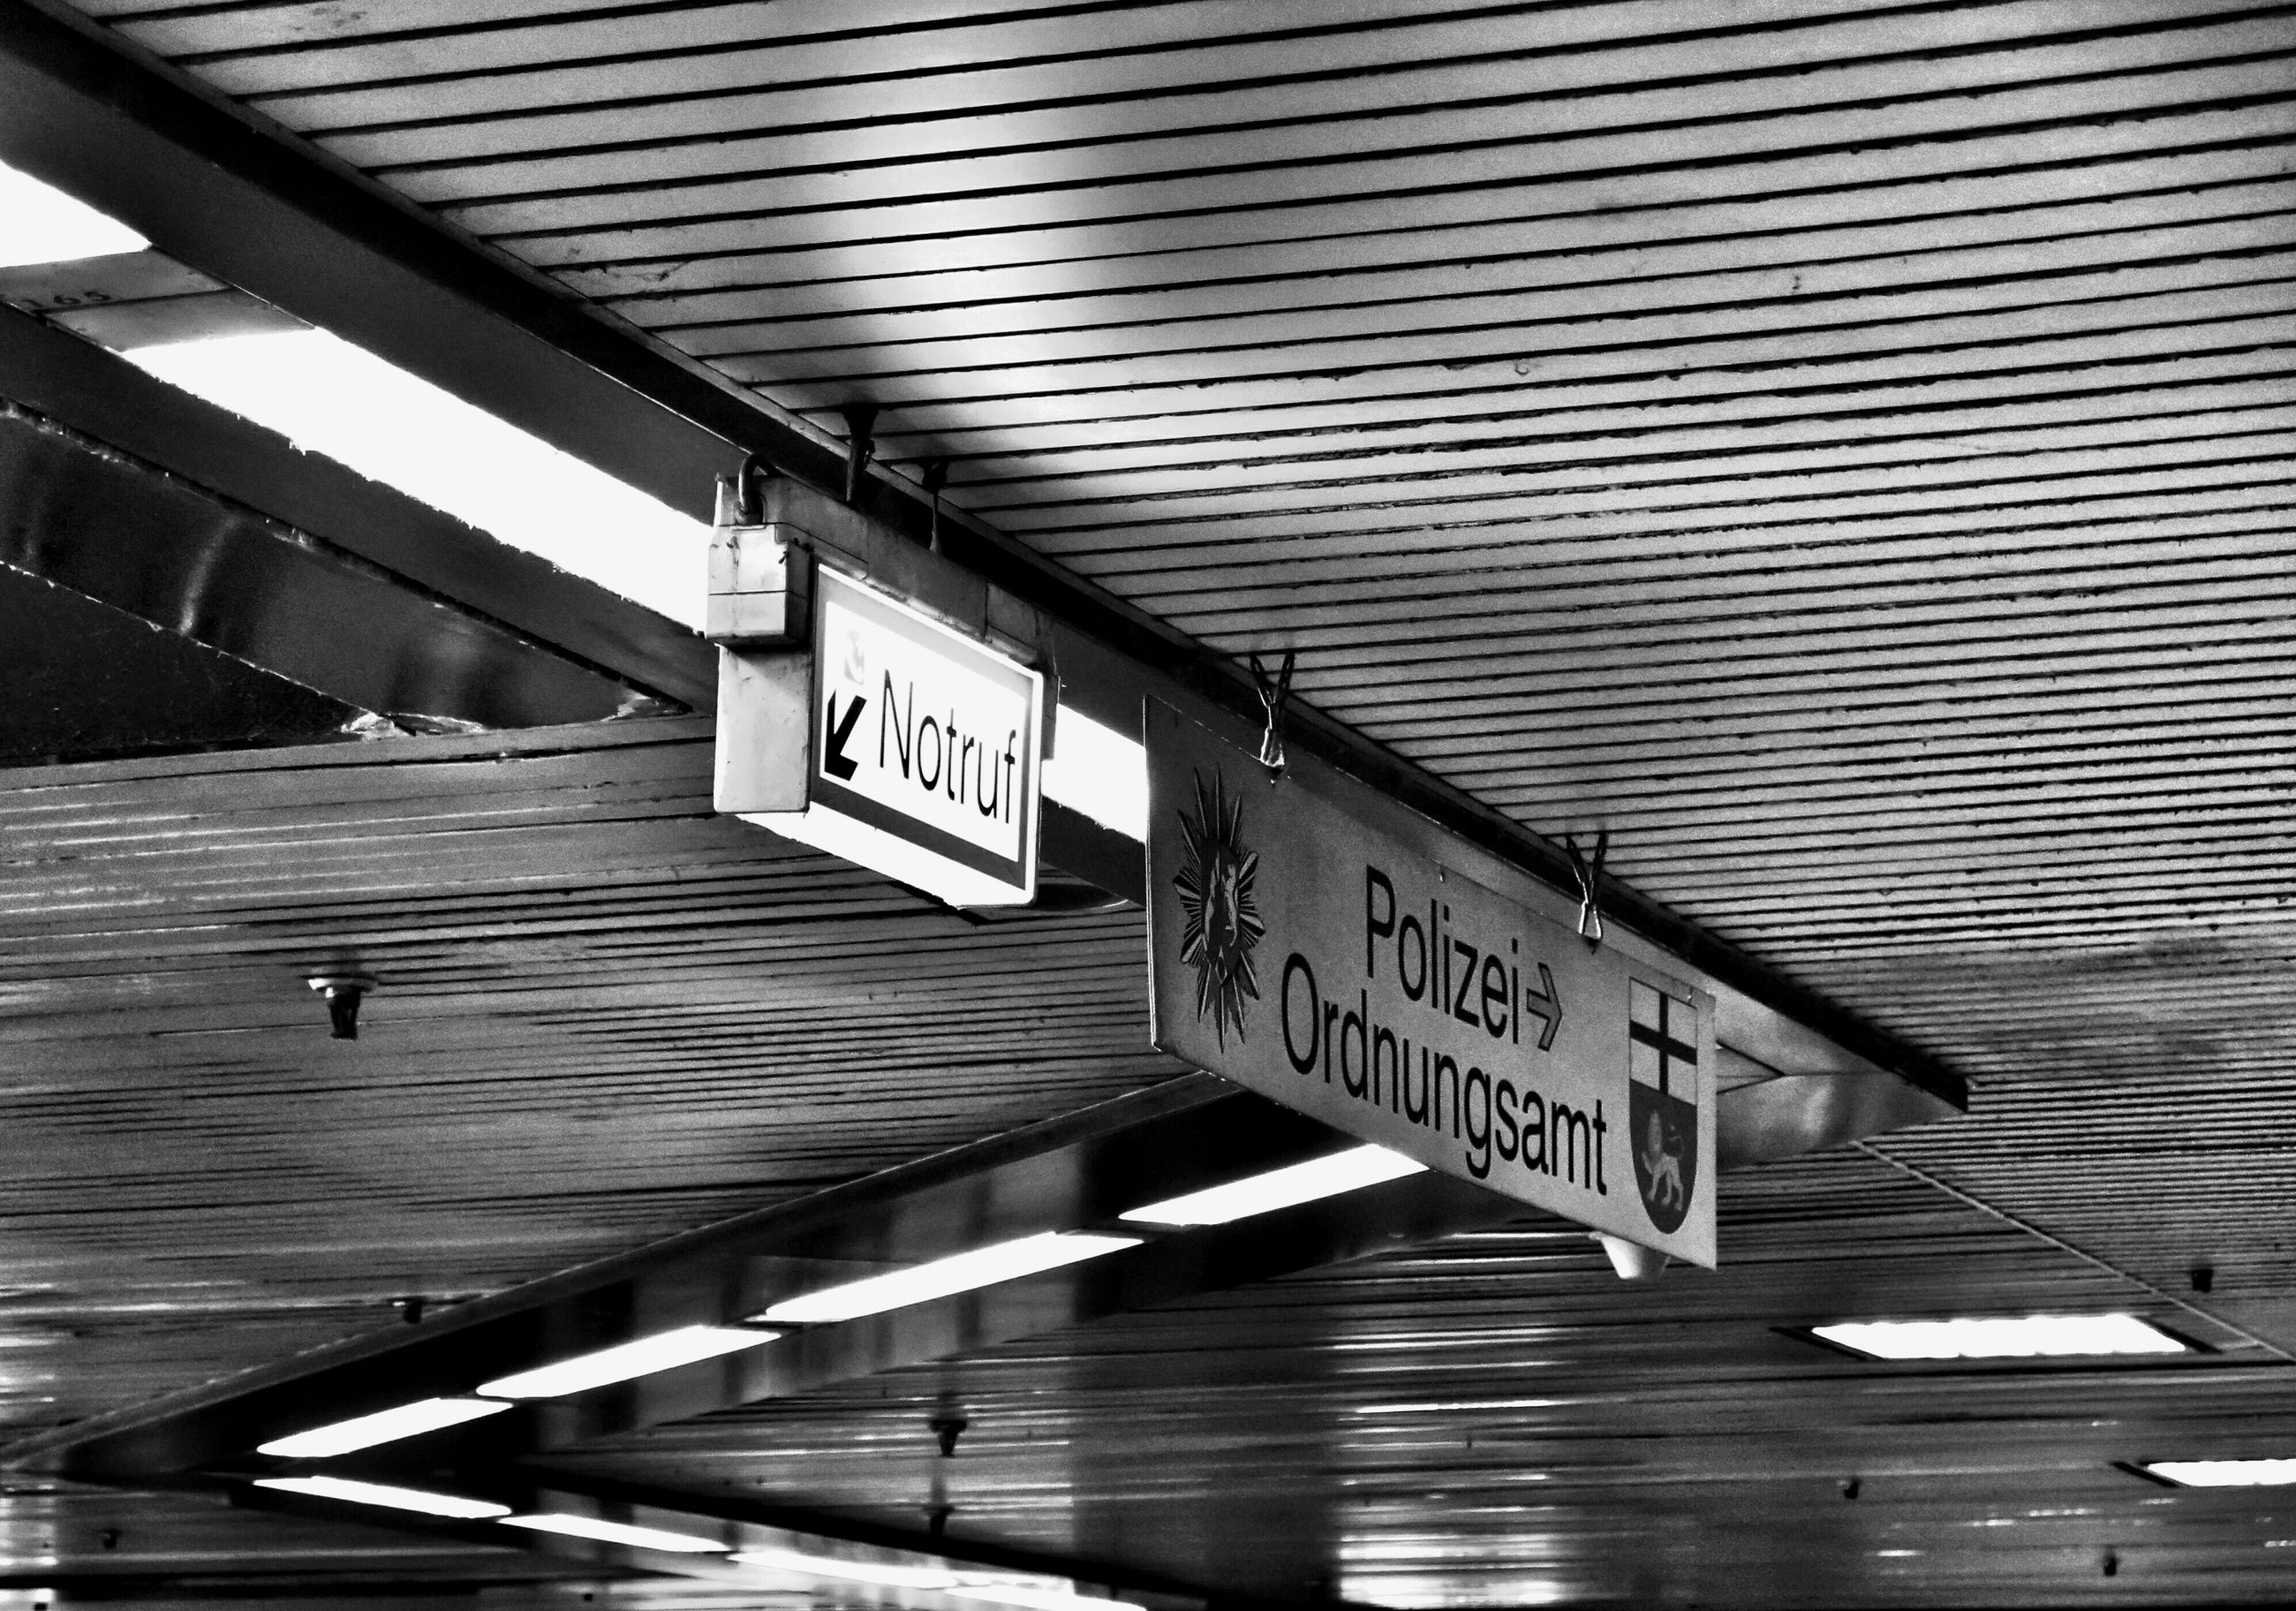 text, built structure, western script, architecture, communication, building exterior, information sign, indoors, low angle view, city, railing, no people, bridge - man made structure, day, sign, reflection, ceiling, modern, railroad station